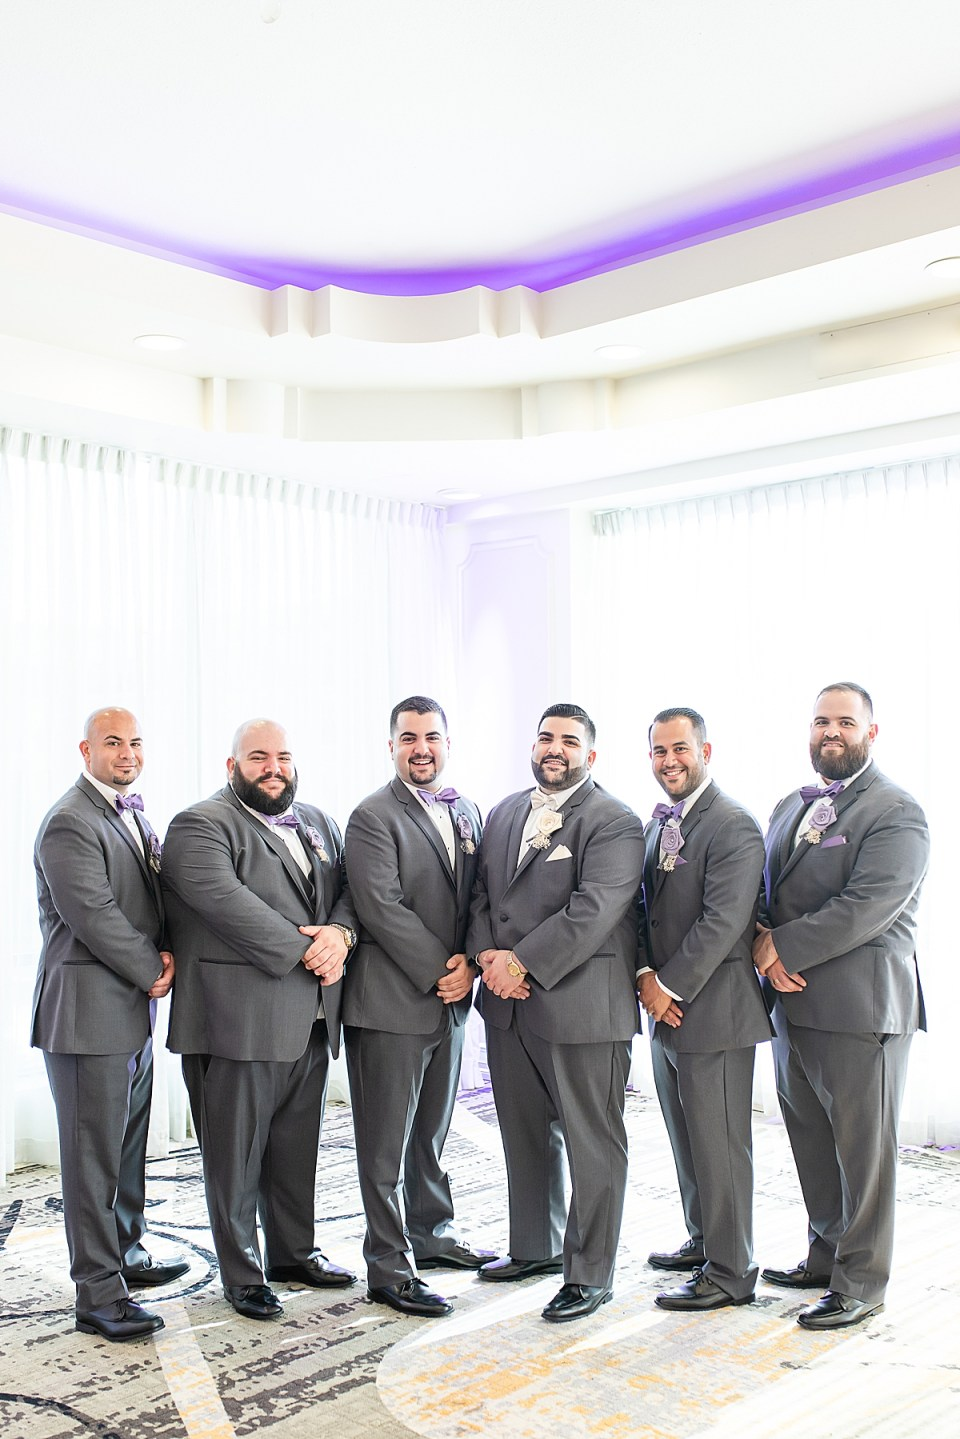 Michael and his groomsmen standing next to each other and smiling at the camera.